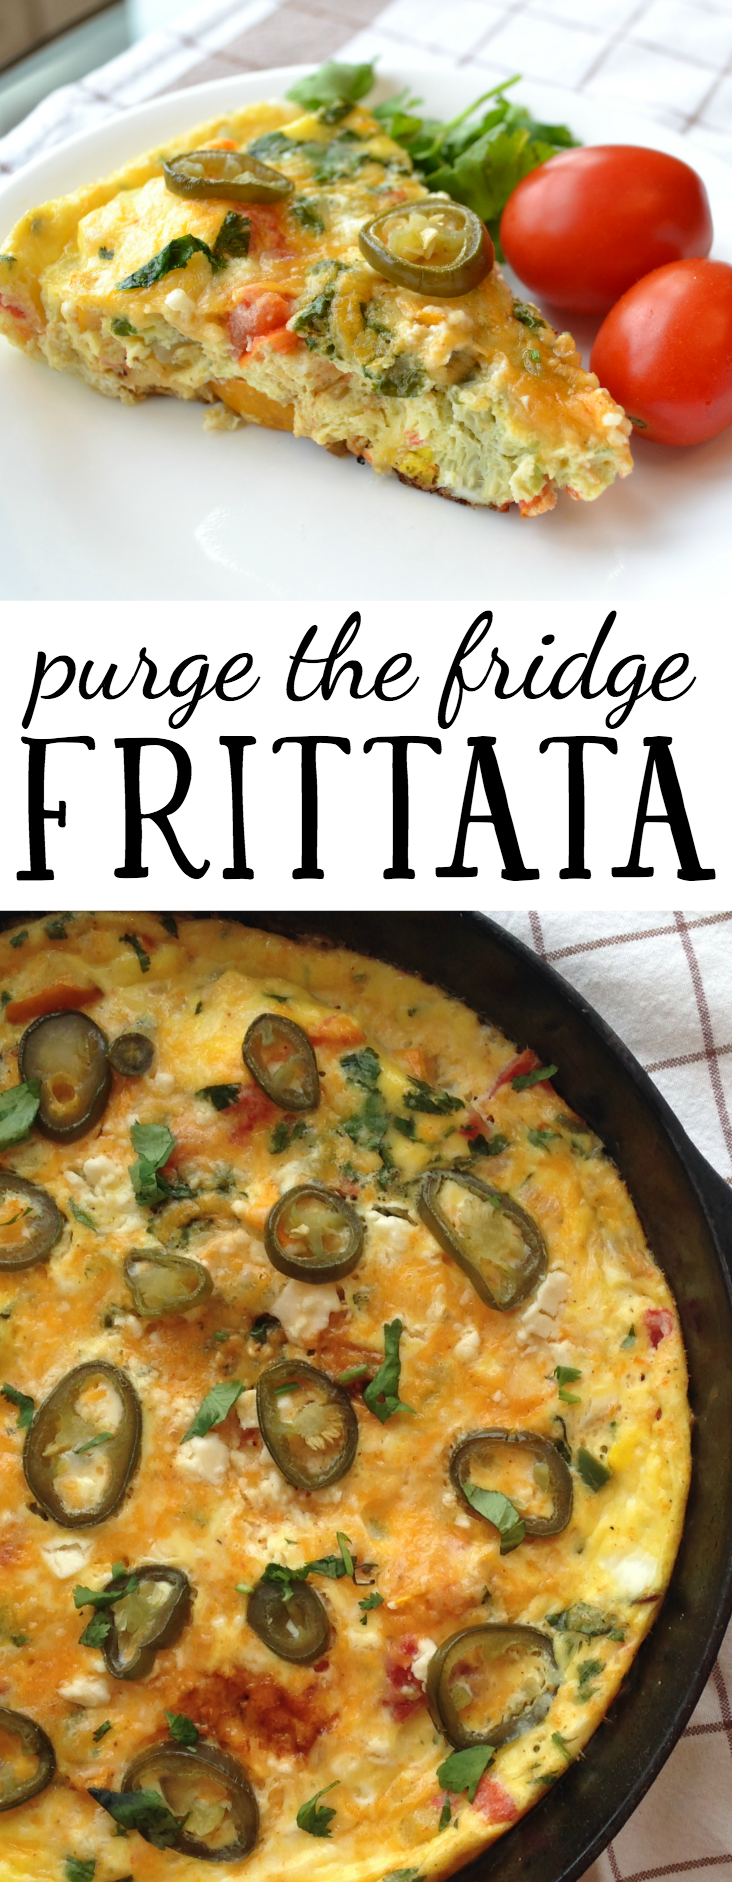 Make a delicious and healthy frittata out of all of the great ingredients you've already got in your fridge and pantry. Click through for a recipe and tons of ideas for frittatas you can make based on what you already have in stock.